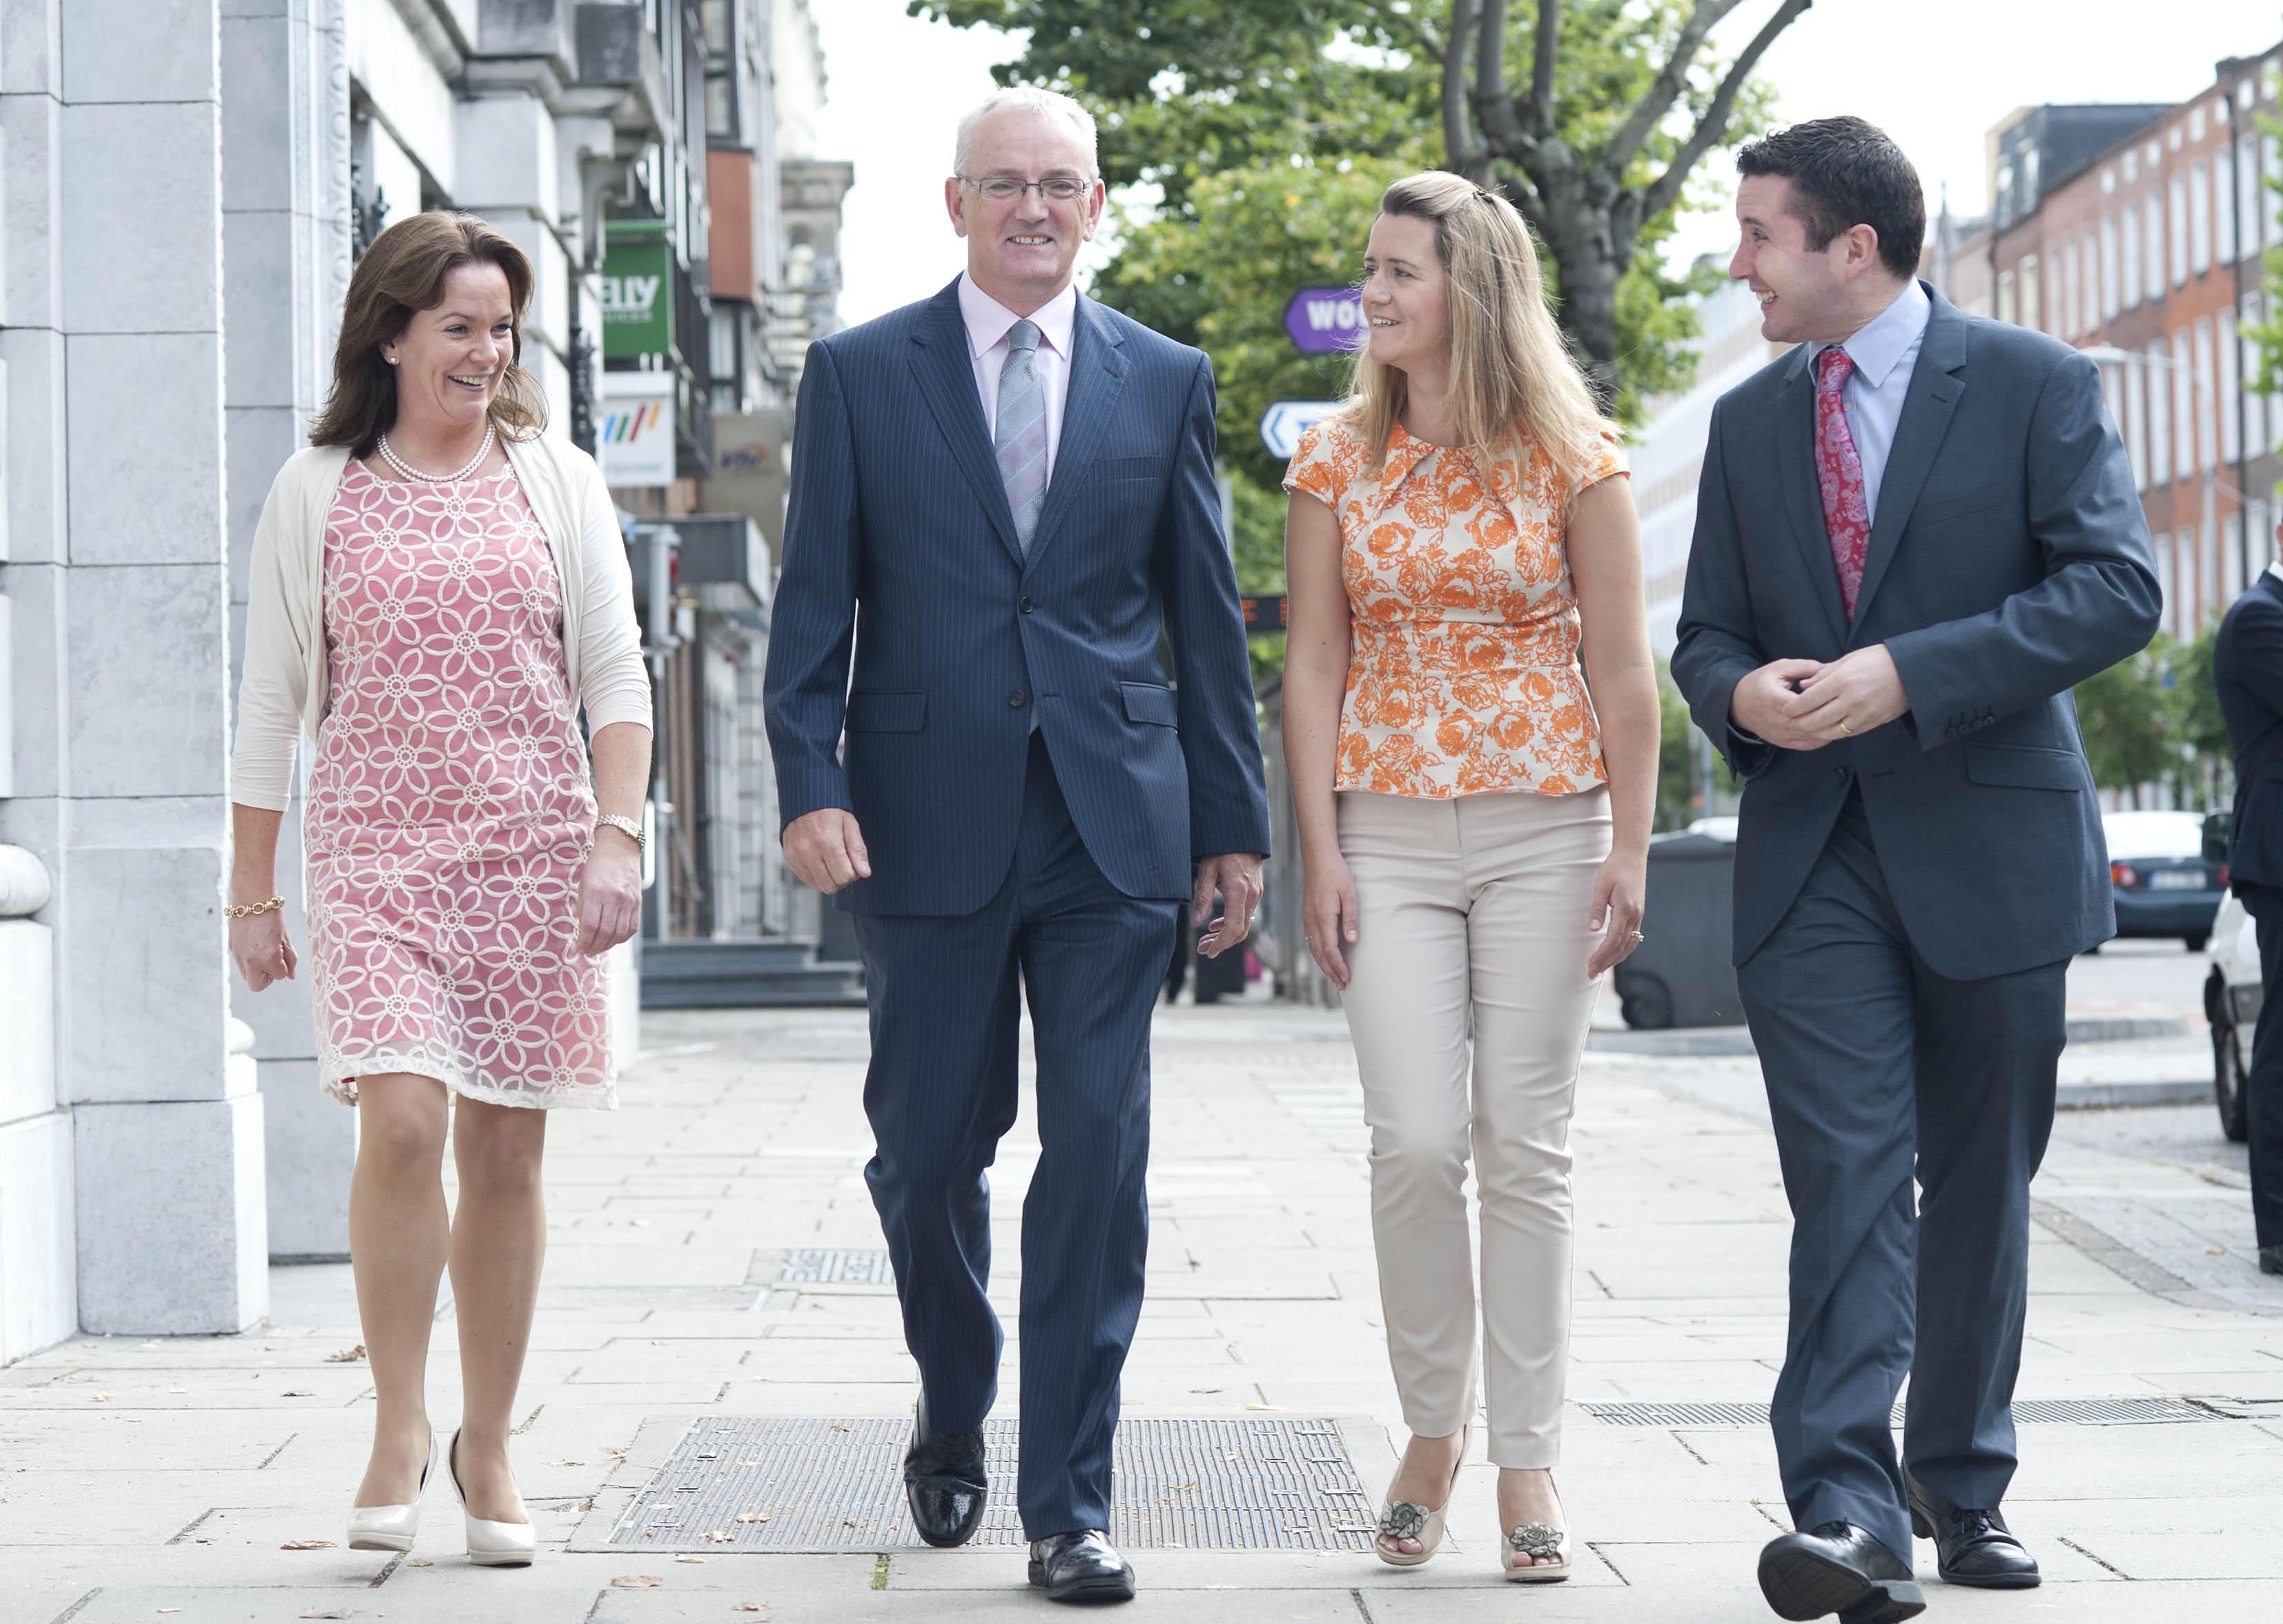 Cork Innovates Launches €3k Bursary